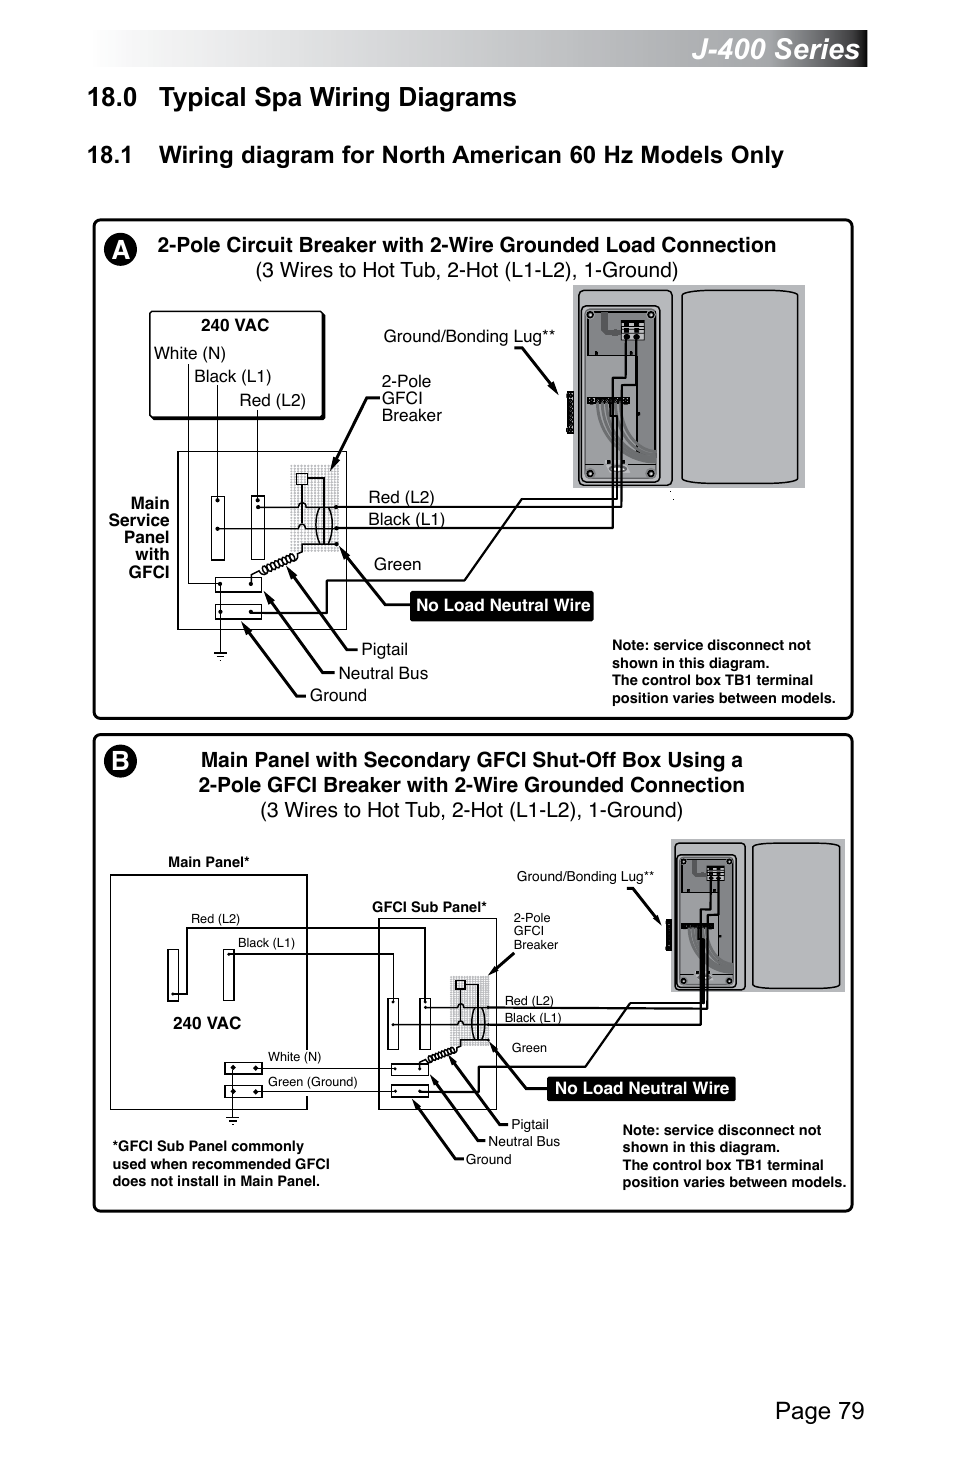 jacuzzi j 470 page85 0 typical spa wiring diagrams, j 400 series, page 79 jacuzzi j 2 pole gfci breaker wiring diagram at alyssarenee.co